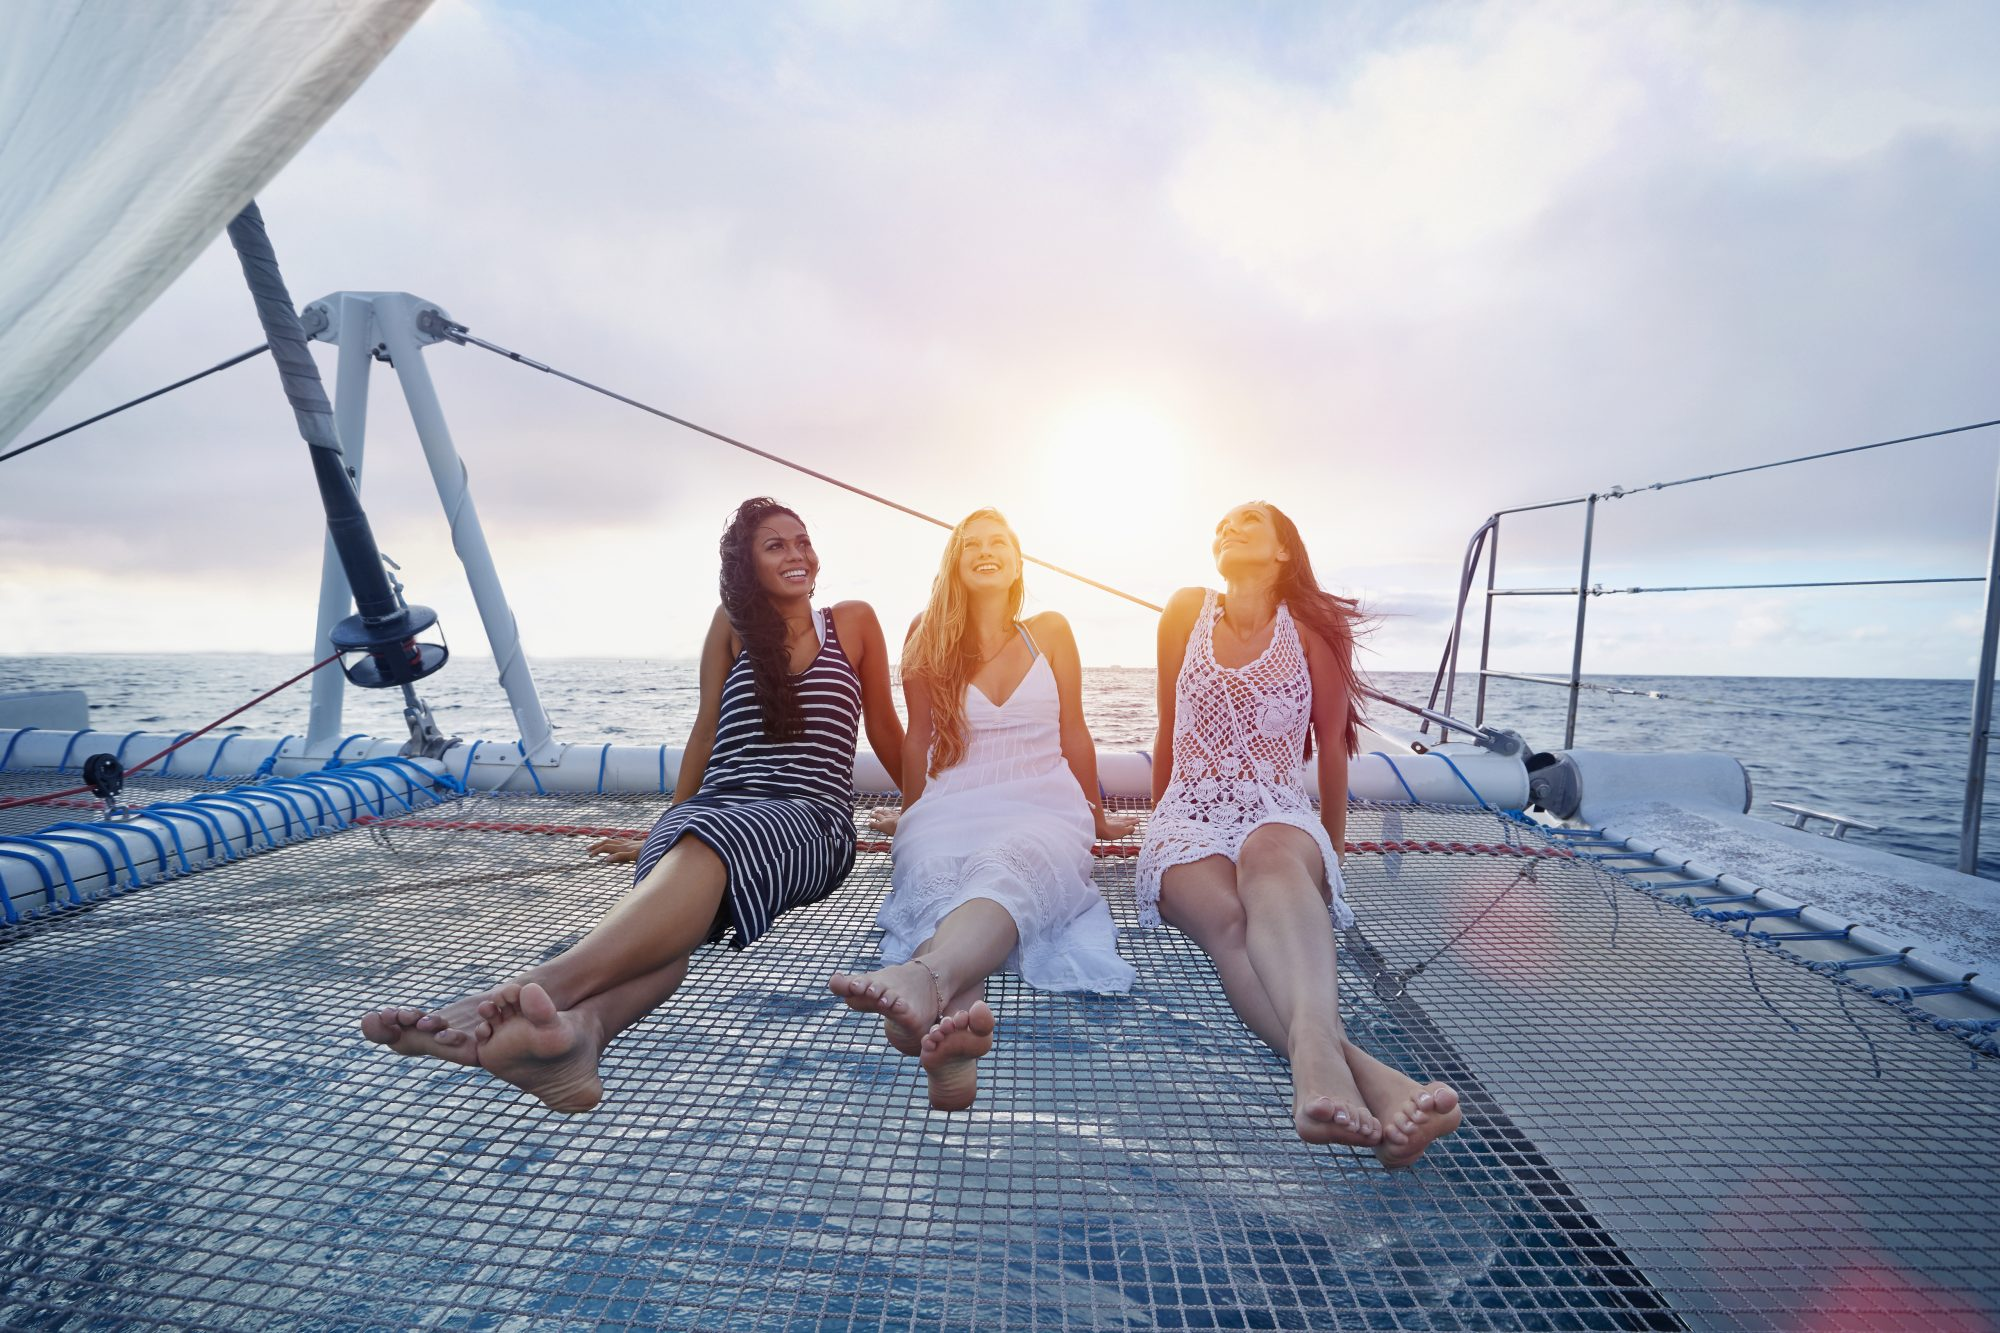 period-syncing-boat-friendship-vacation-sunset